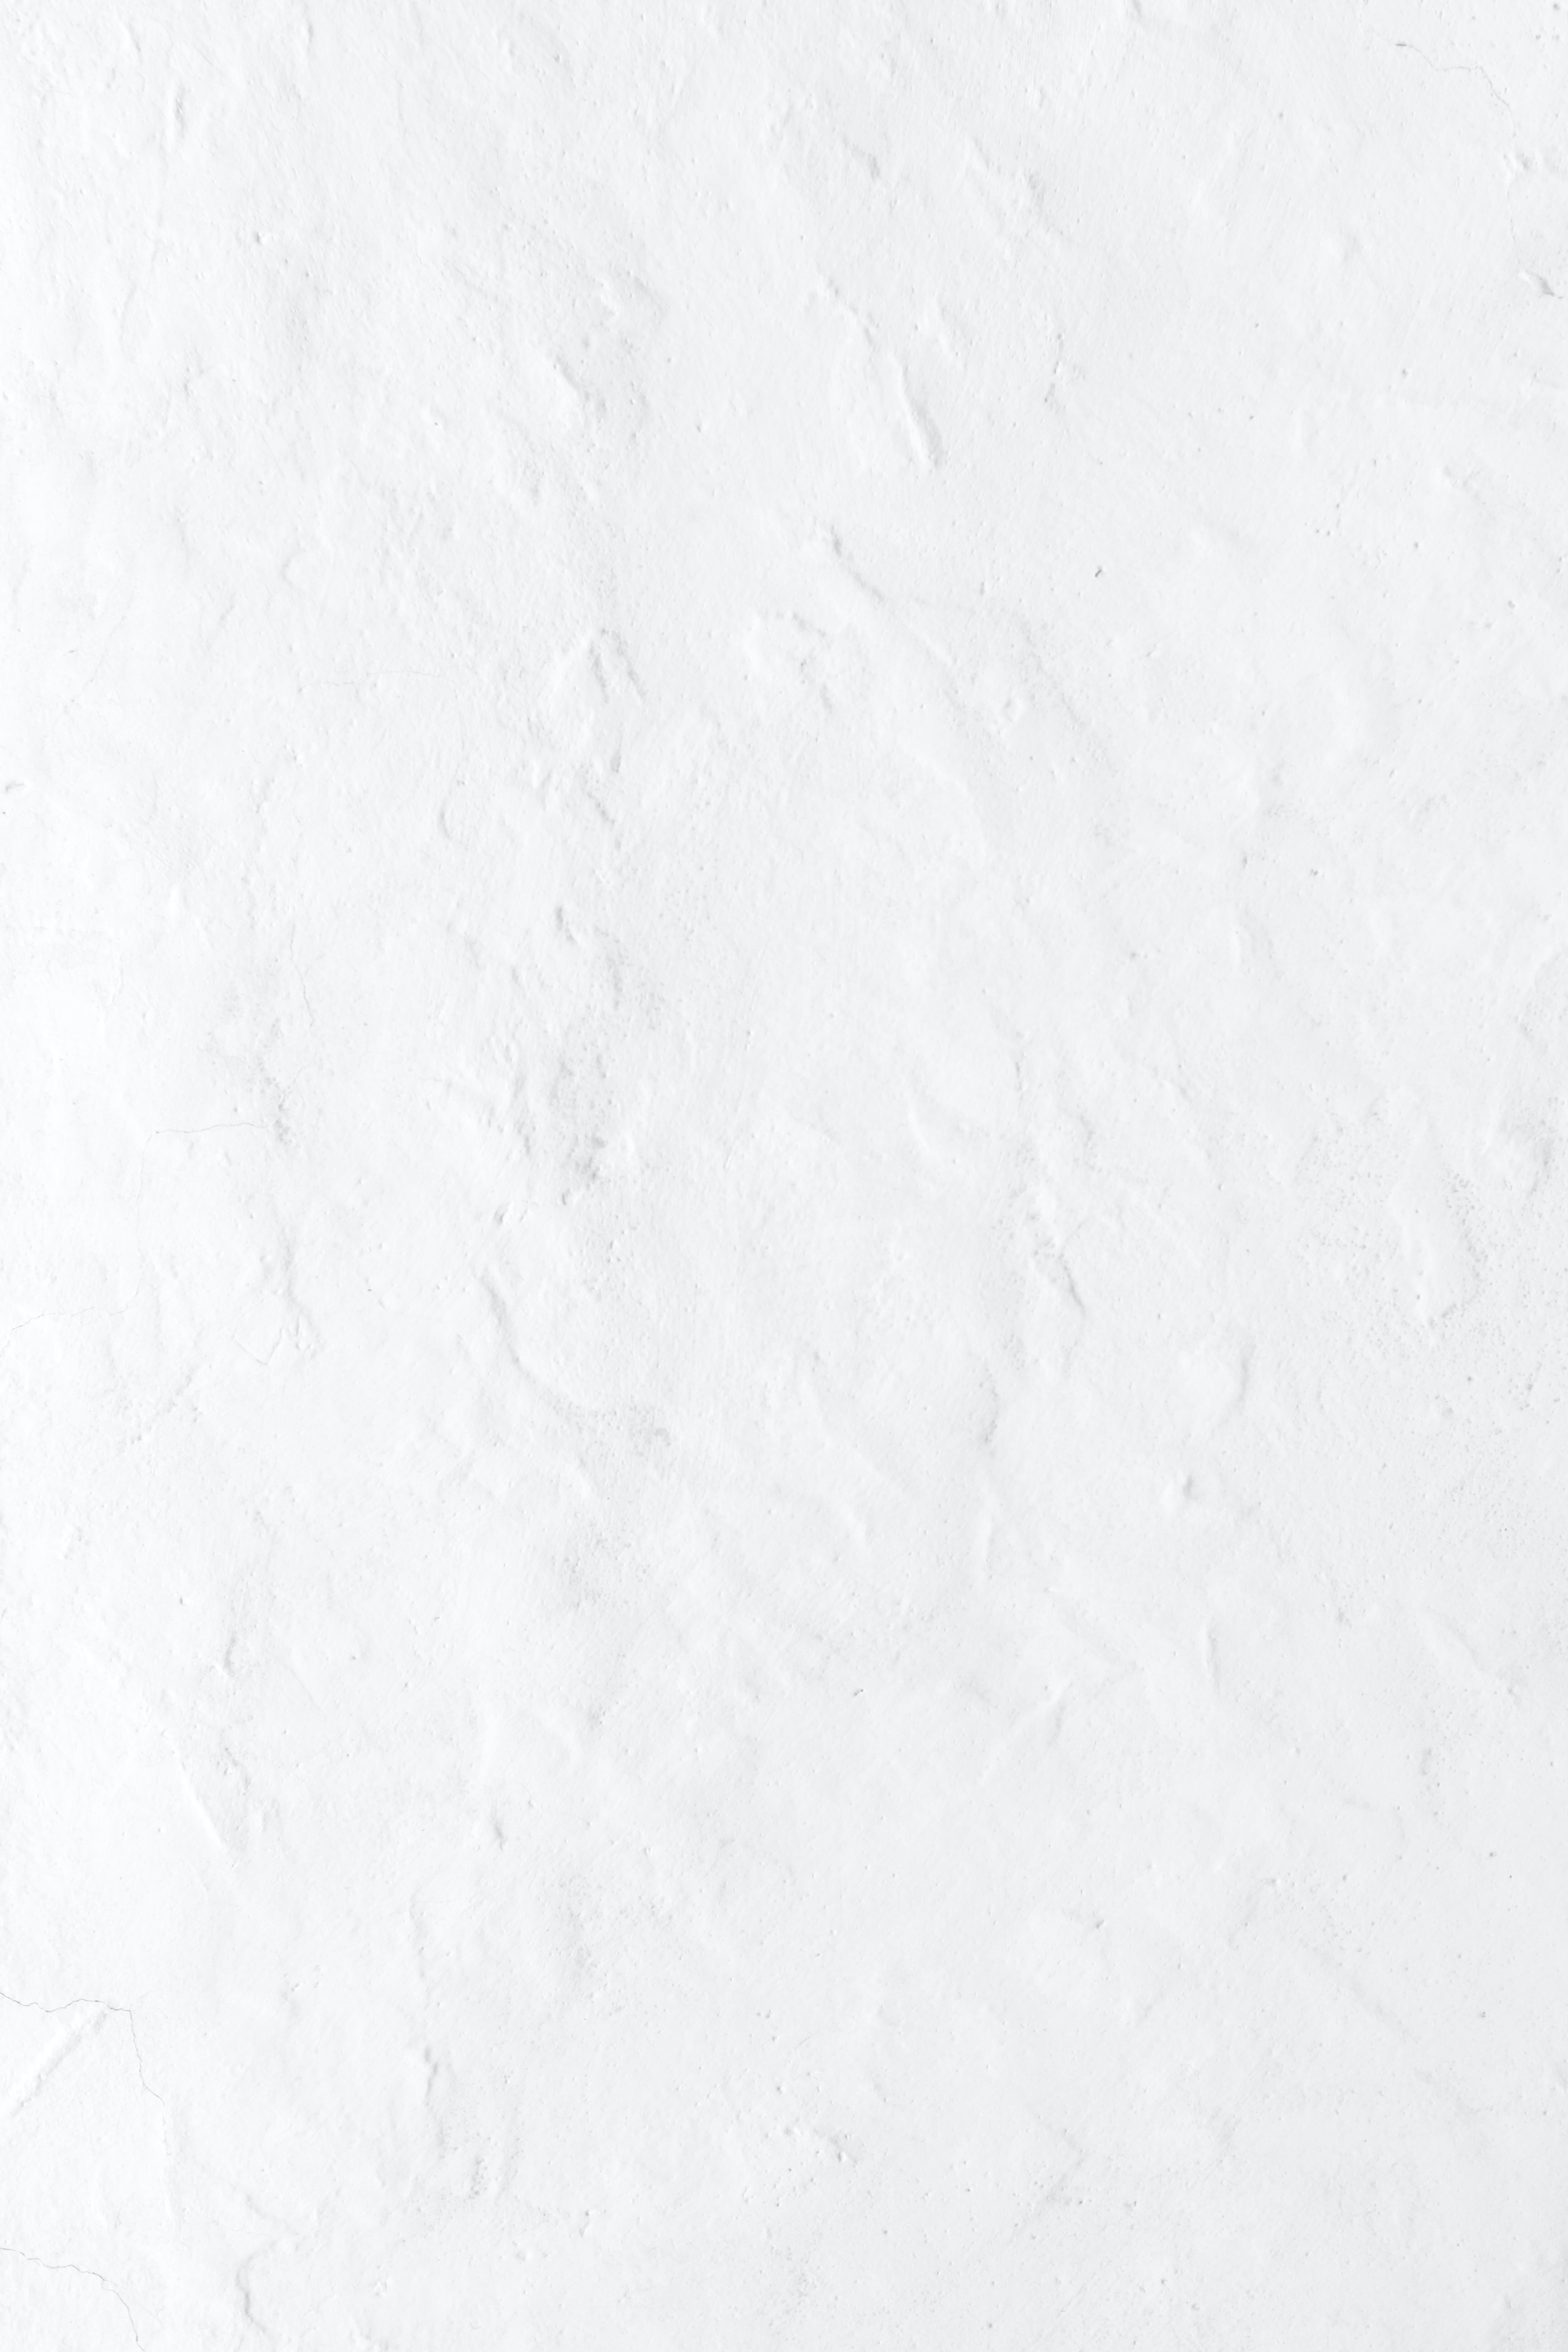 100 White Pictures Hd Download Free Images Stock Photos On